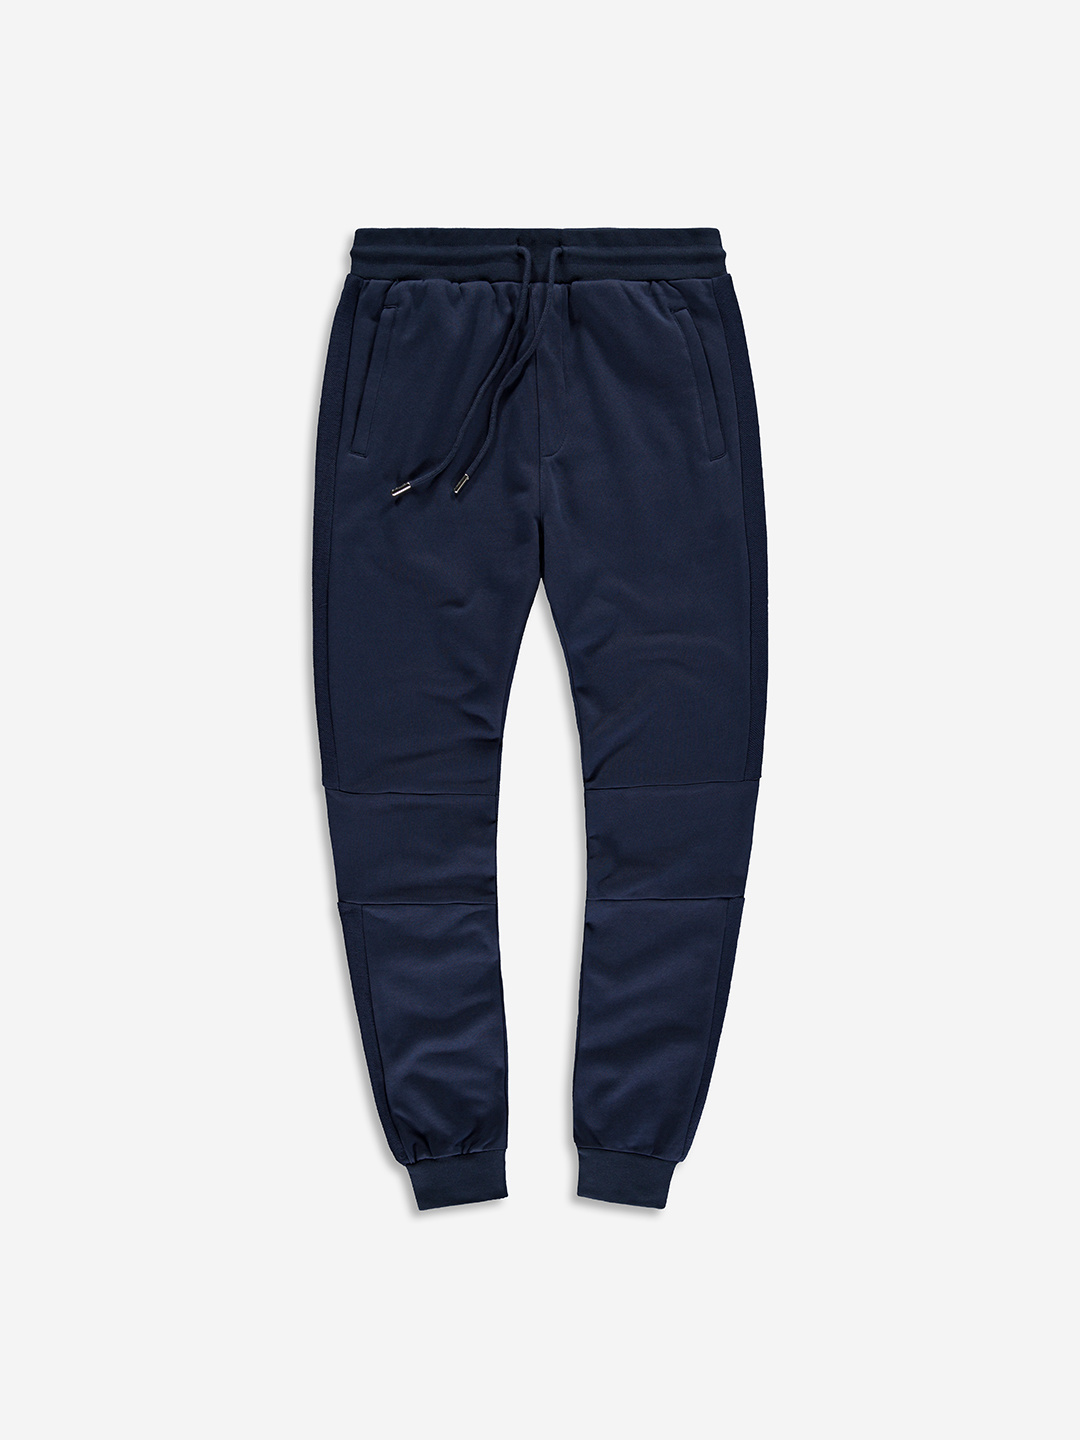 SPLIT FABRIC SWEATPANTS NAVY